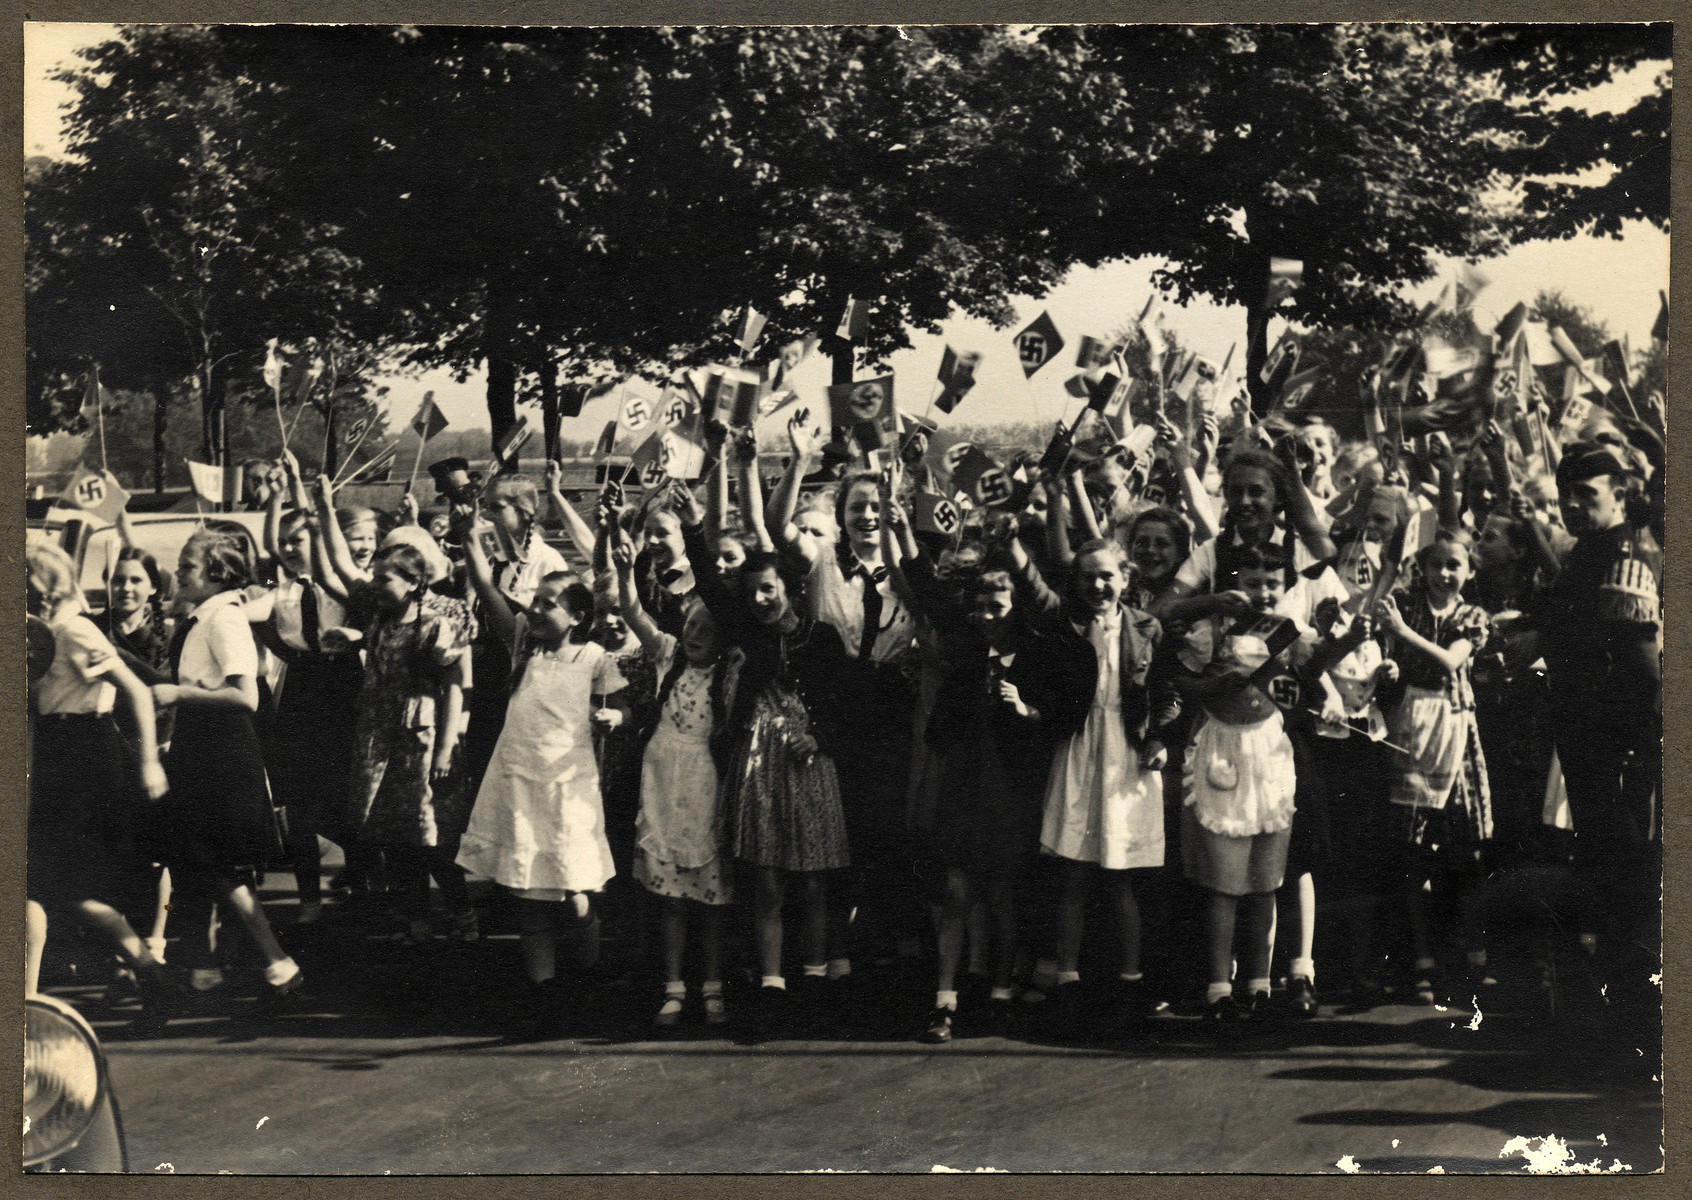 A jublilant crowd with many children waive their flags as they await the arrival of Tullio Cianetti, the Italian Work Minister, to the Scholven factory.